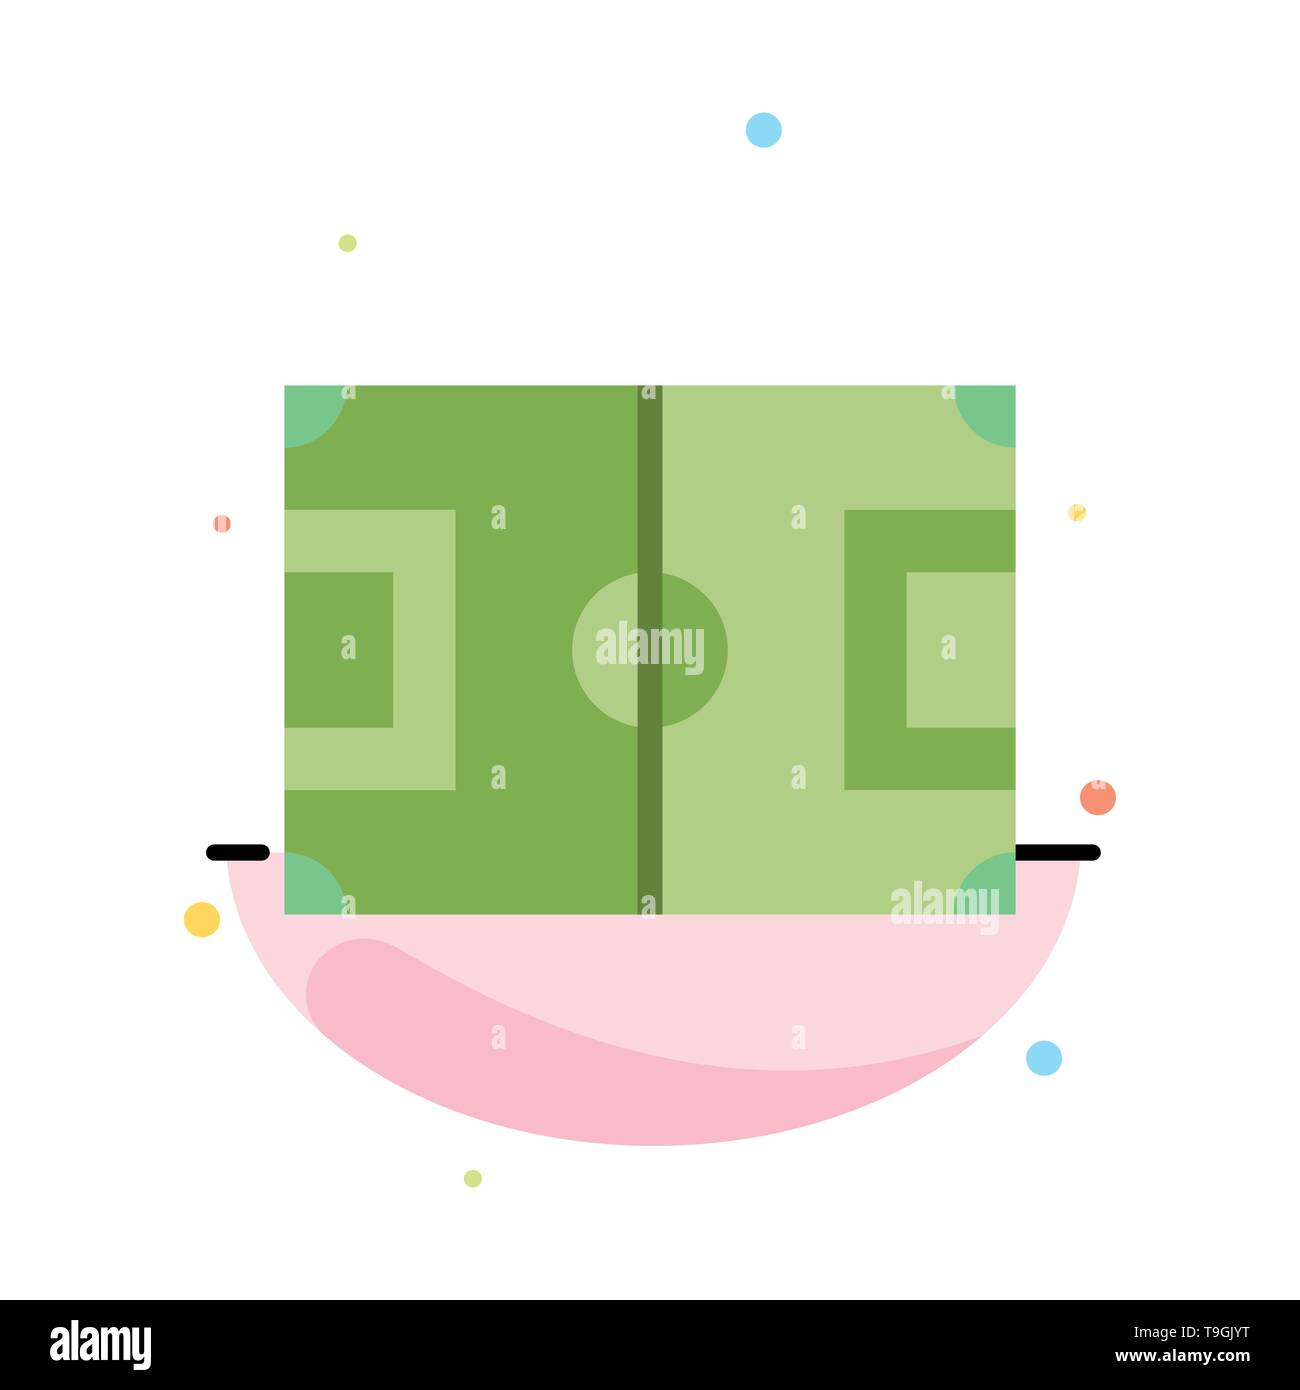 Field, Football, Game, Pitch, Soccer Abstract Flat Color Icon Template - Stock Image